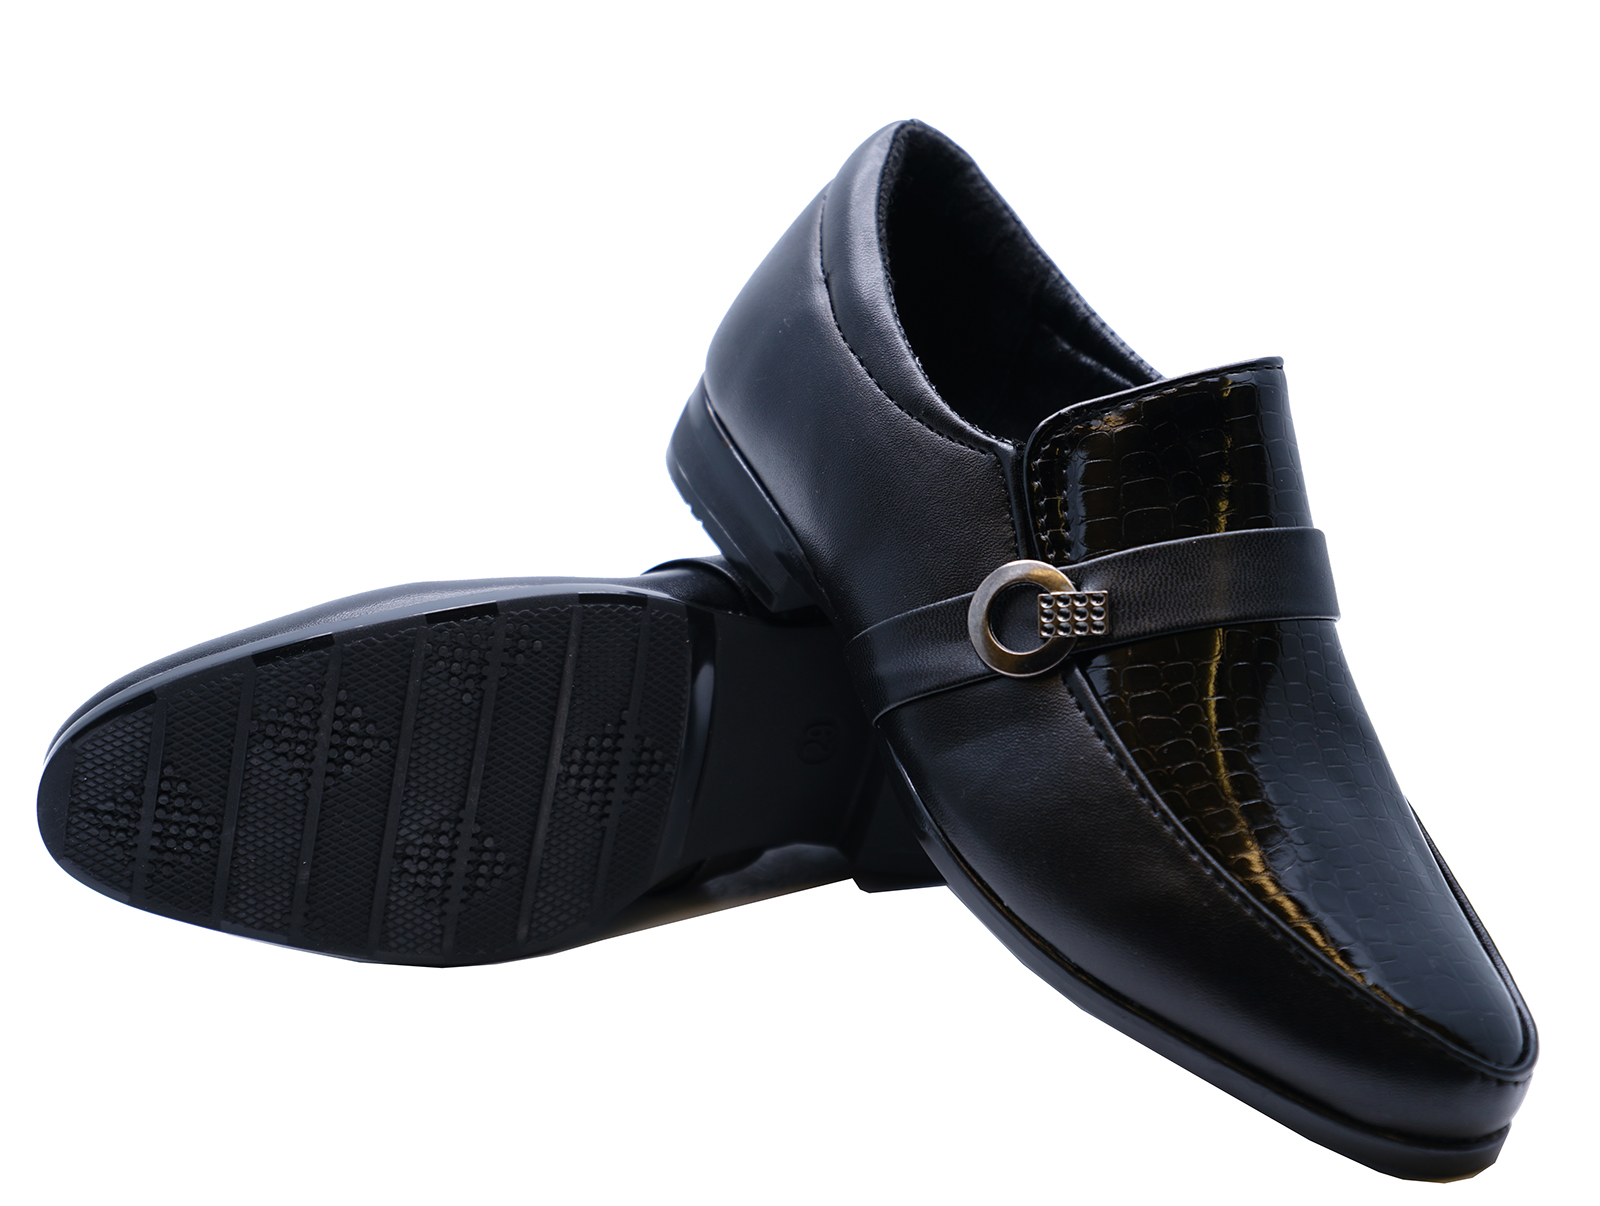 BOYS-KIDS-JUNIOR-BLACK-SCHOOL-SLIP-ON-SMART-WEDDING-LOAFERS-SHOES-SIZES-8-6 thumbnail 8